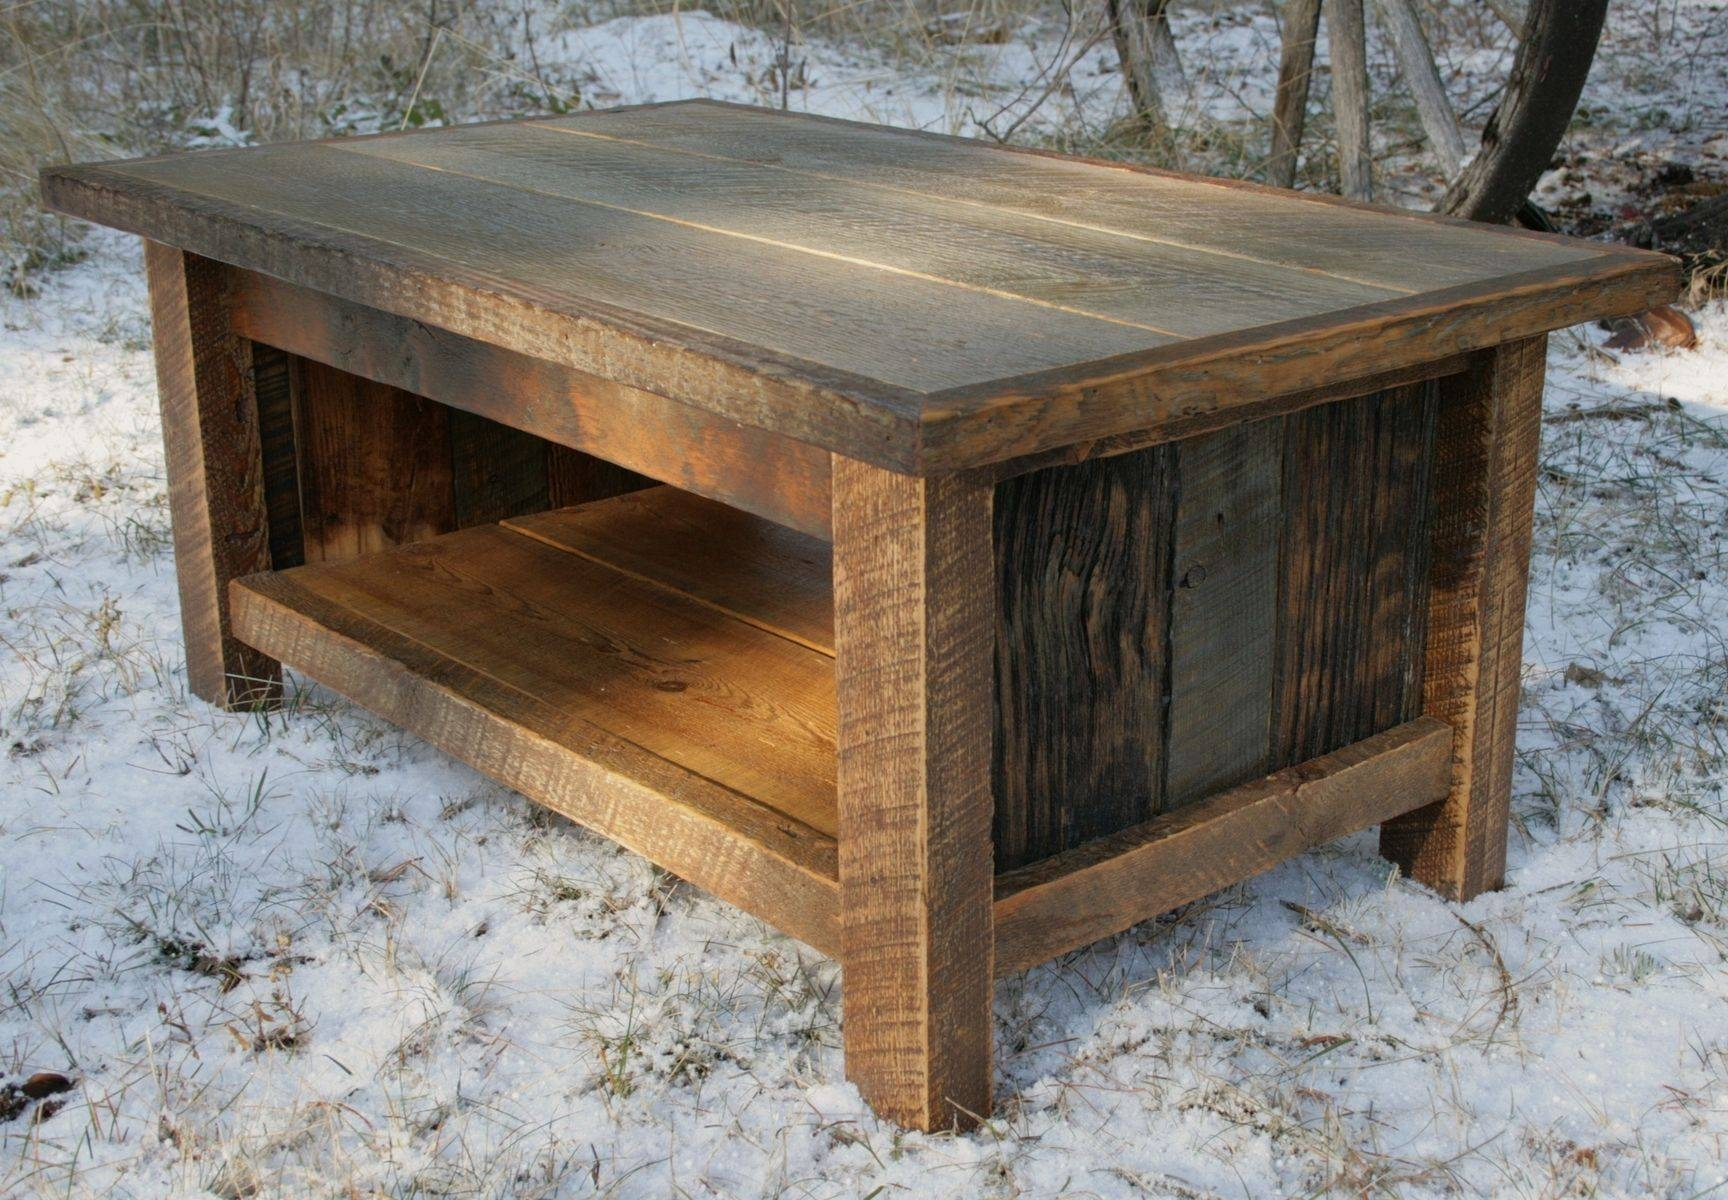 Reclaimed Wood Furniture And Barnwood Furniture | Custommade within Rustic Barnwood Coffee Tables (Image 24 of 30)